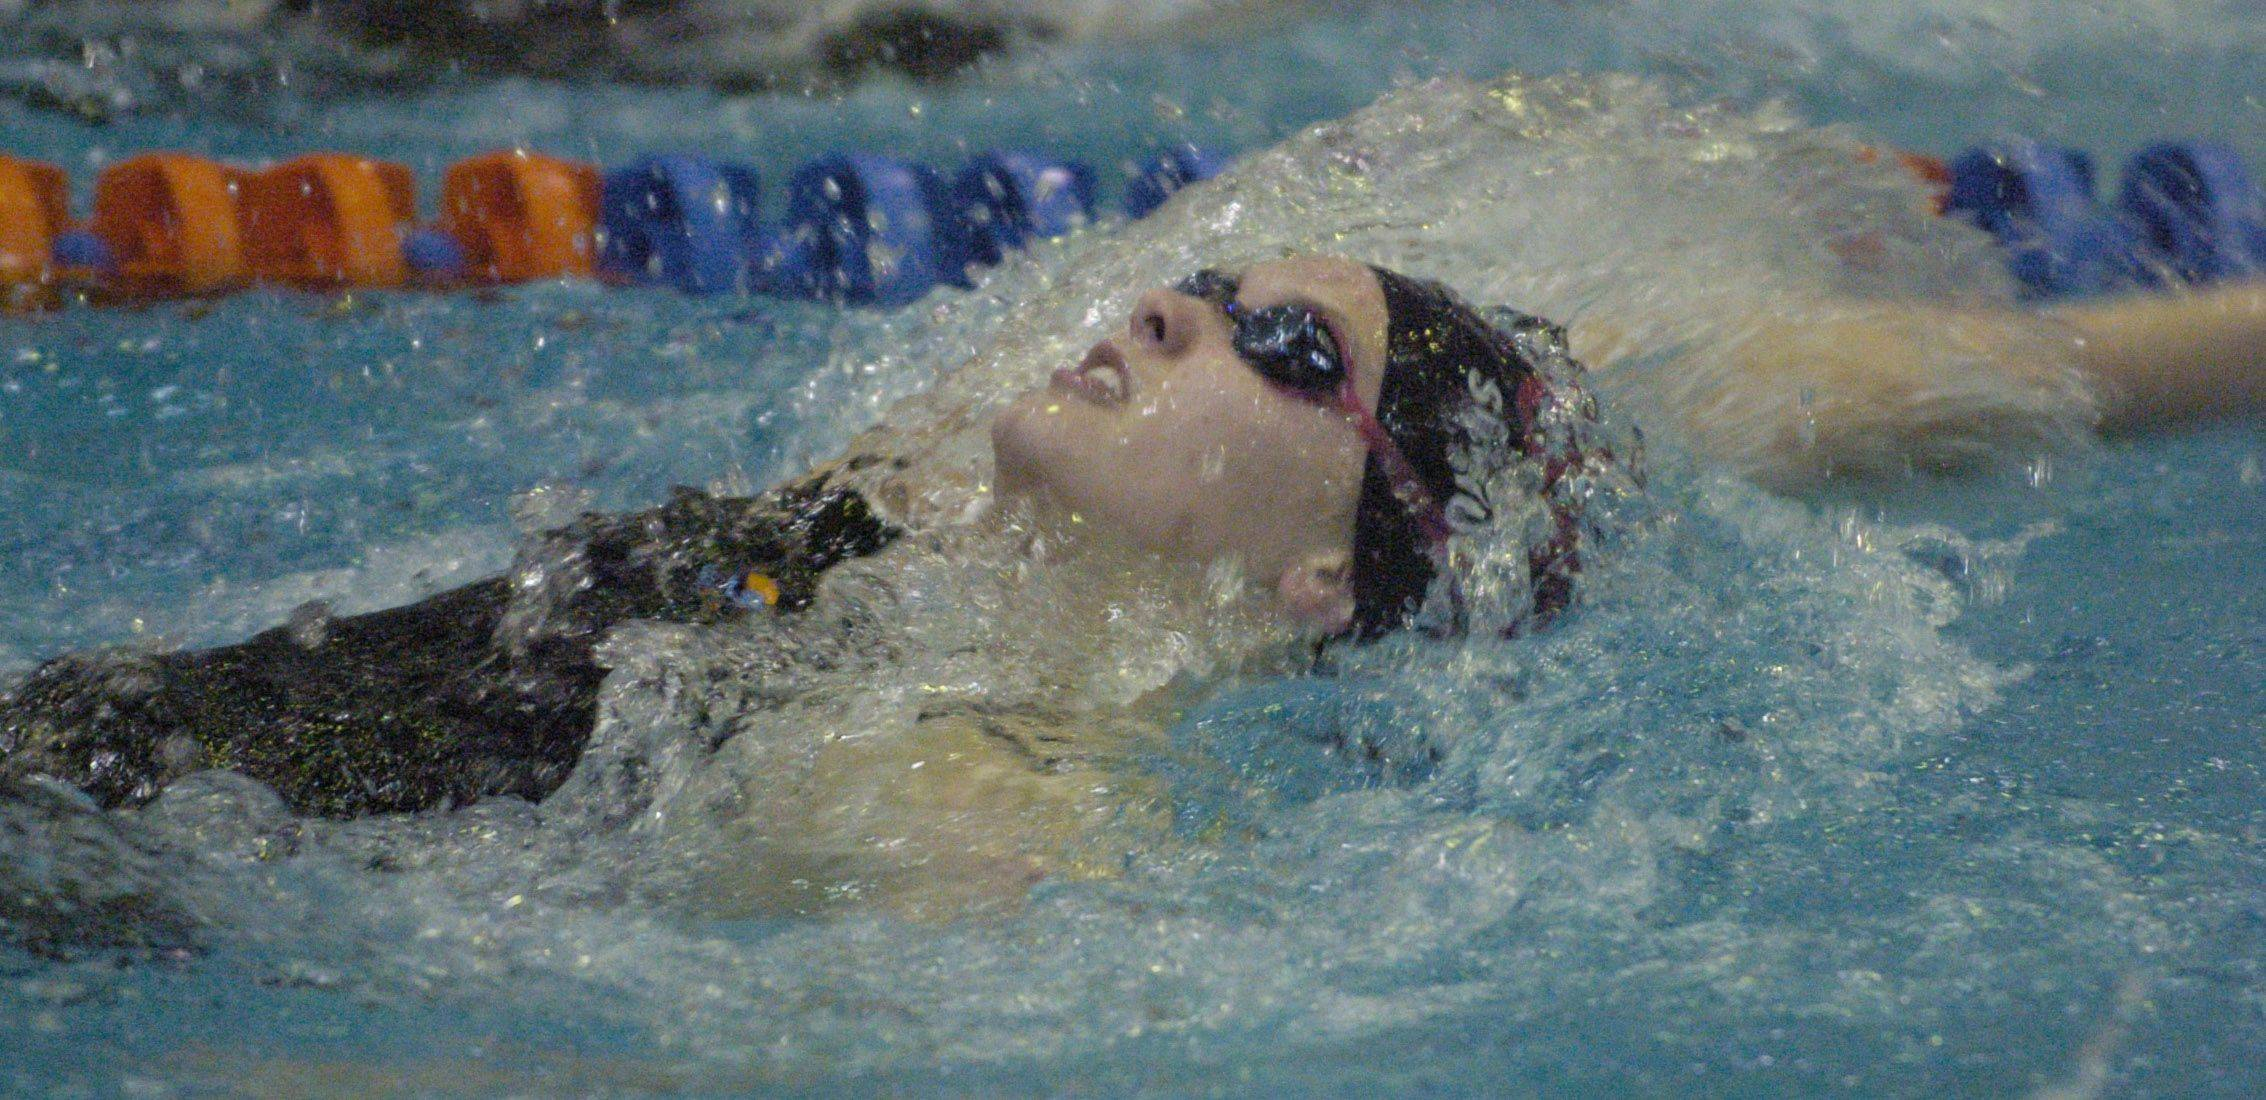 Schaumburg's Sammy Schuckles swims the 100-yard back stroke during Saturday's state swimming finals at Evanston.